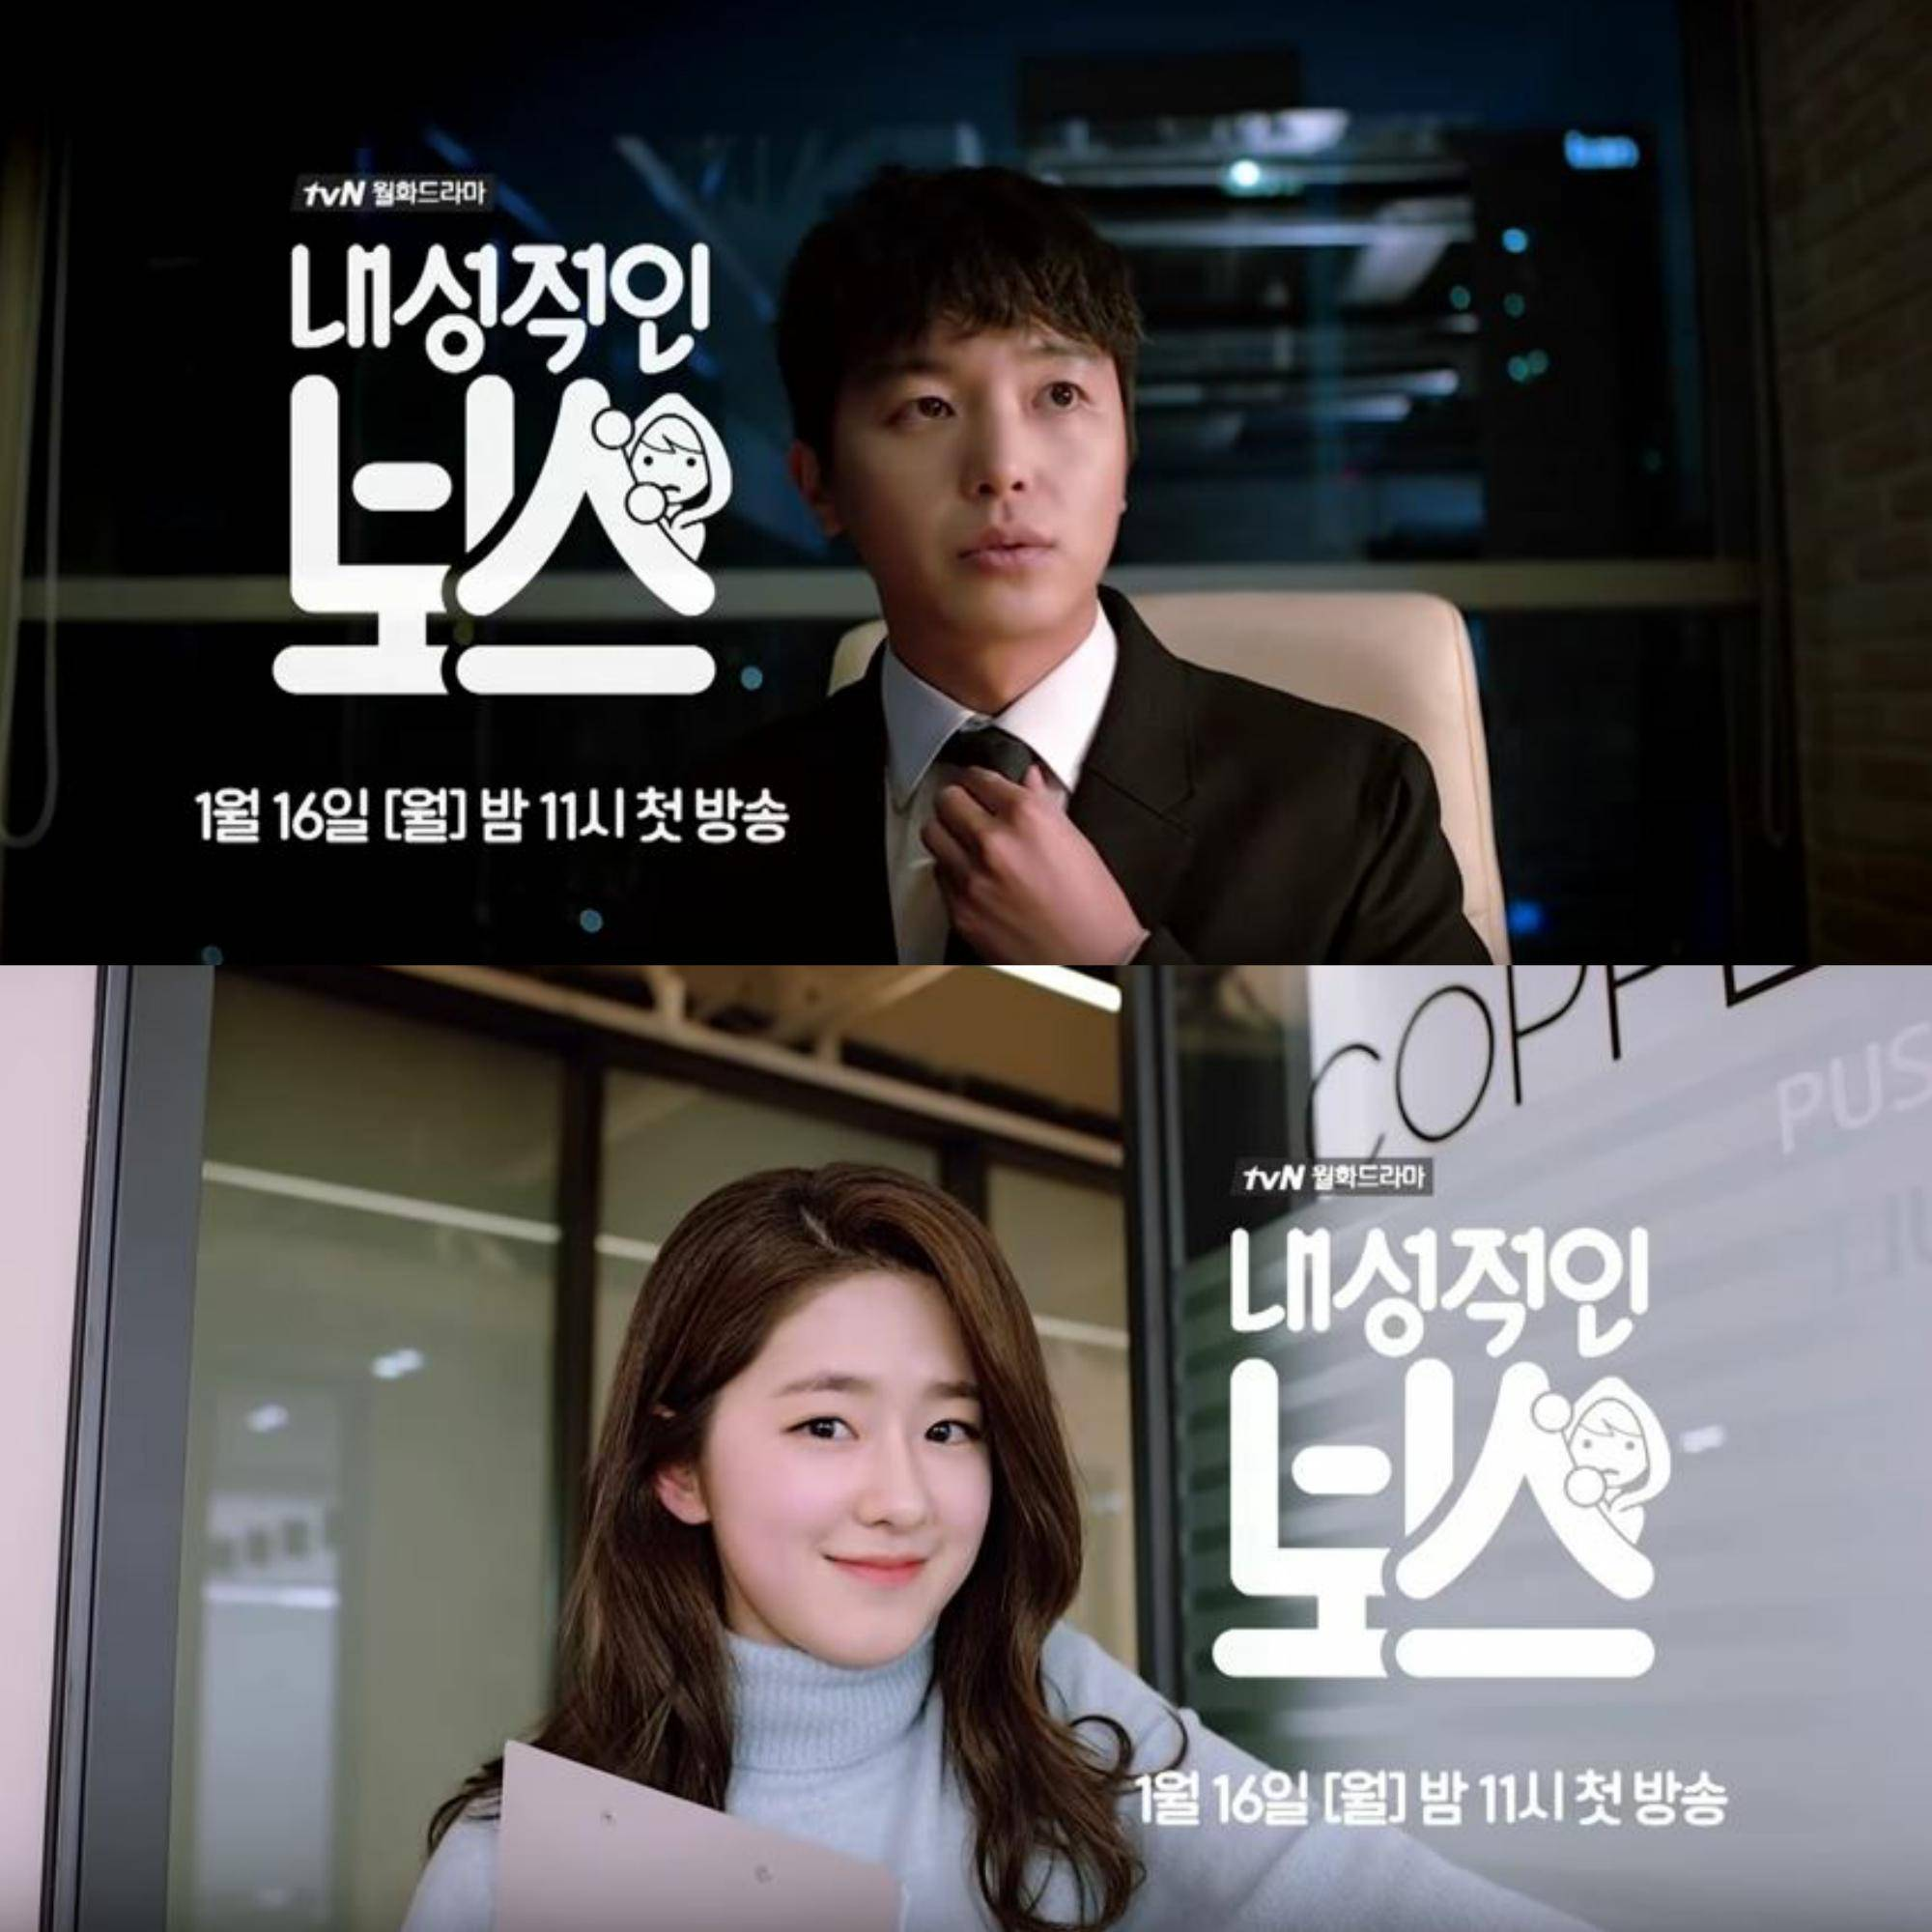 Introverted boss